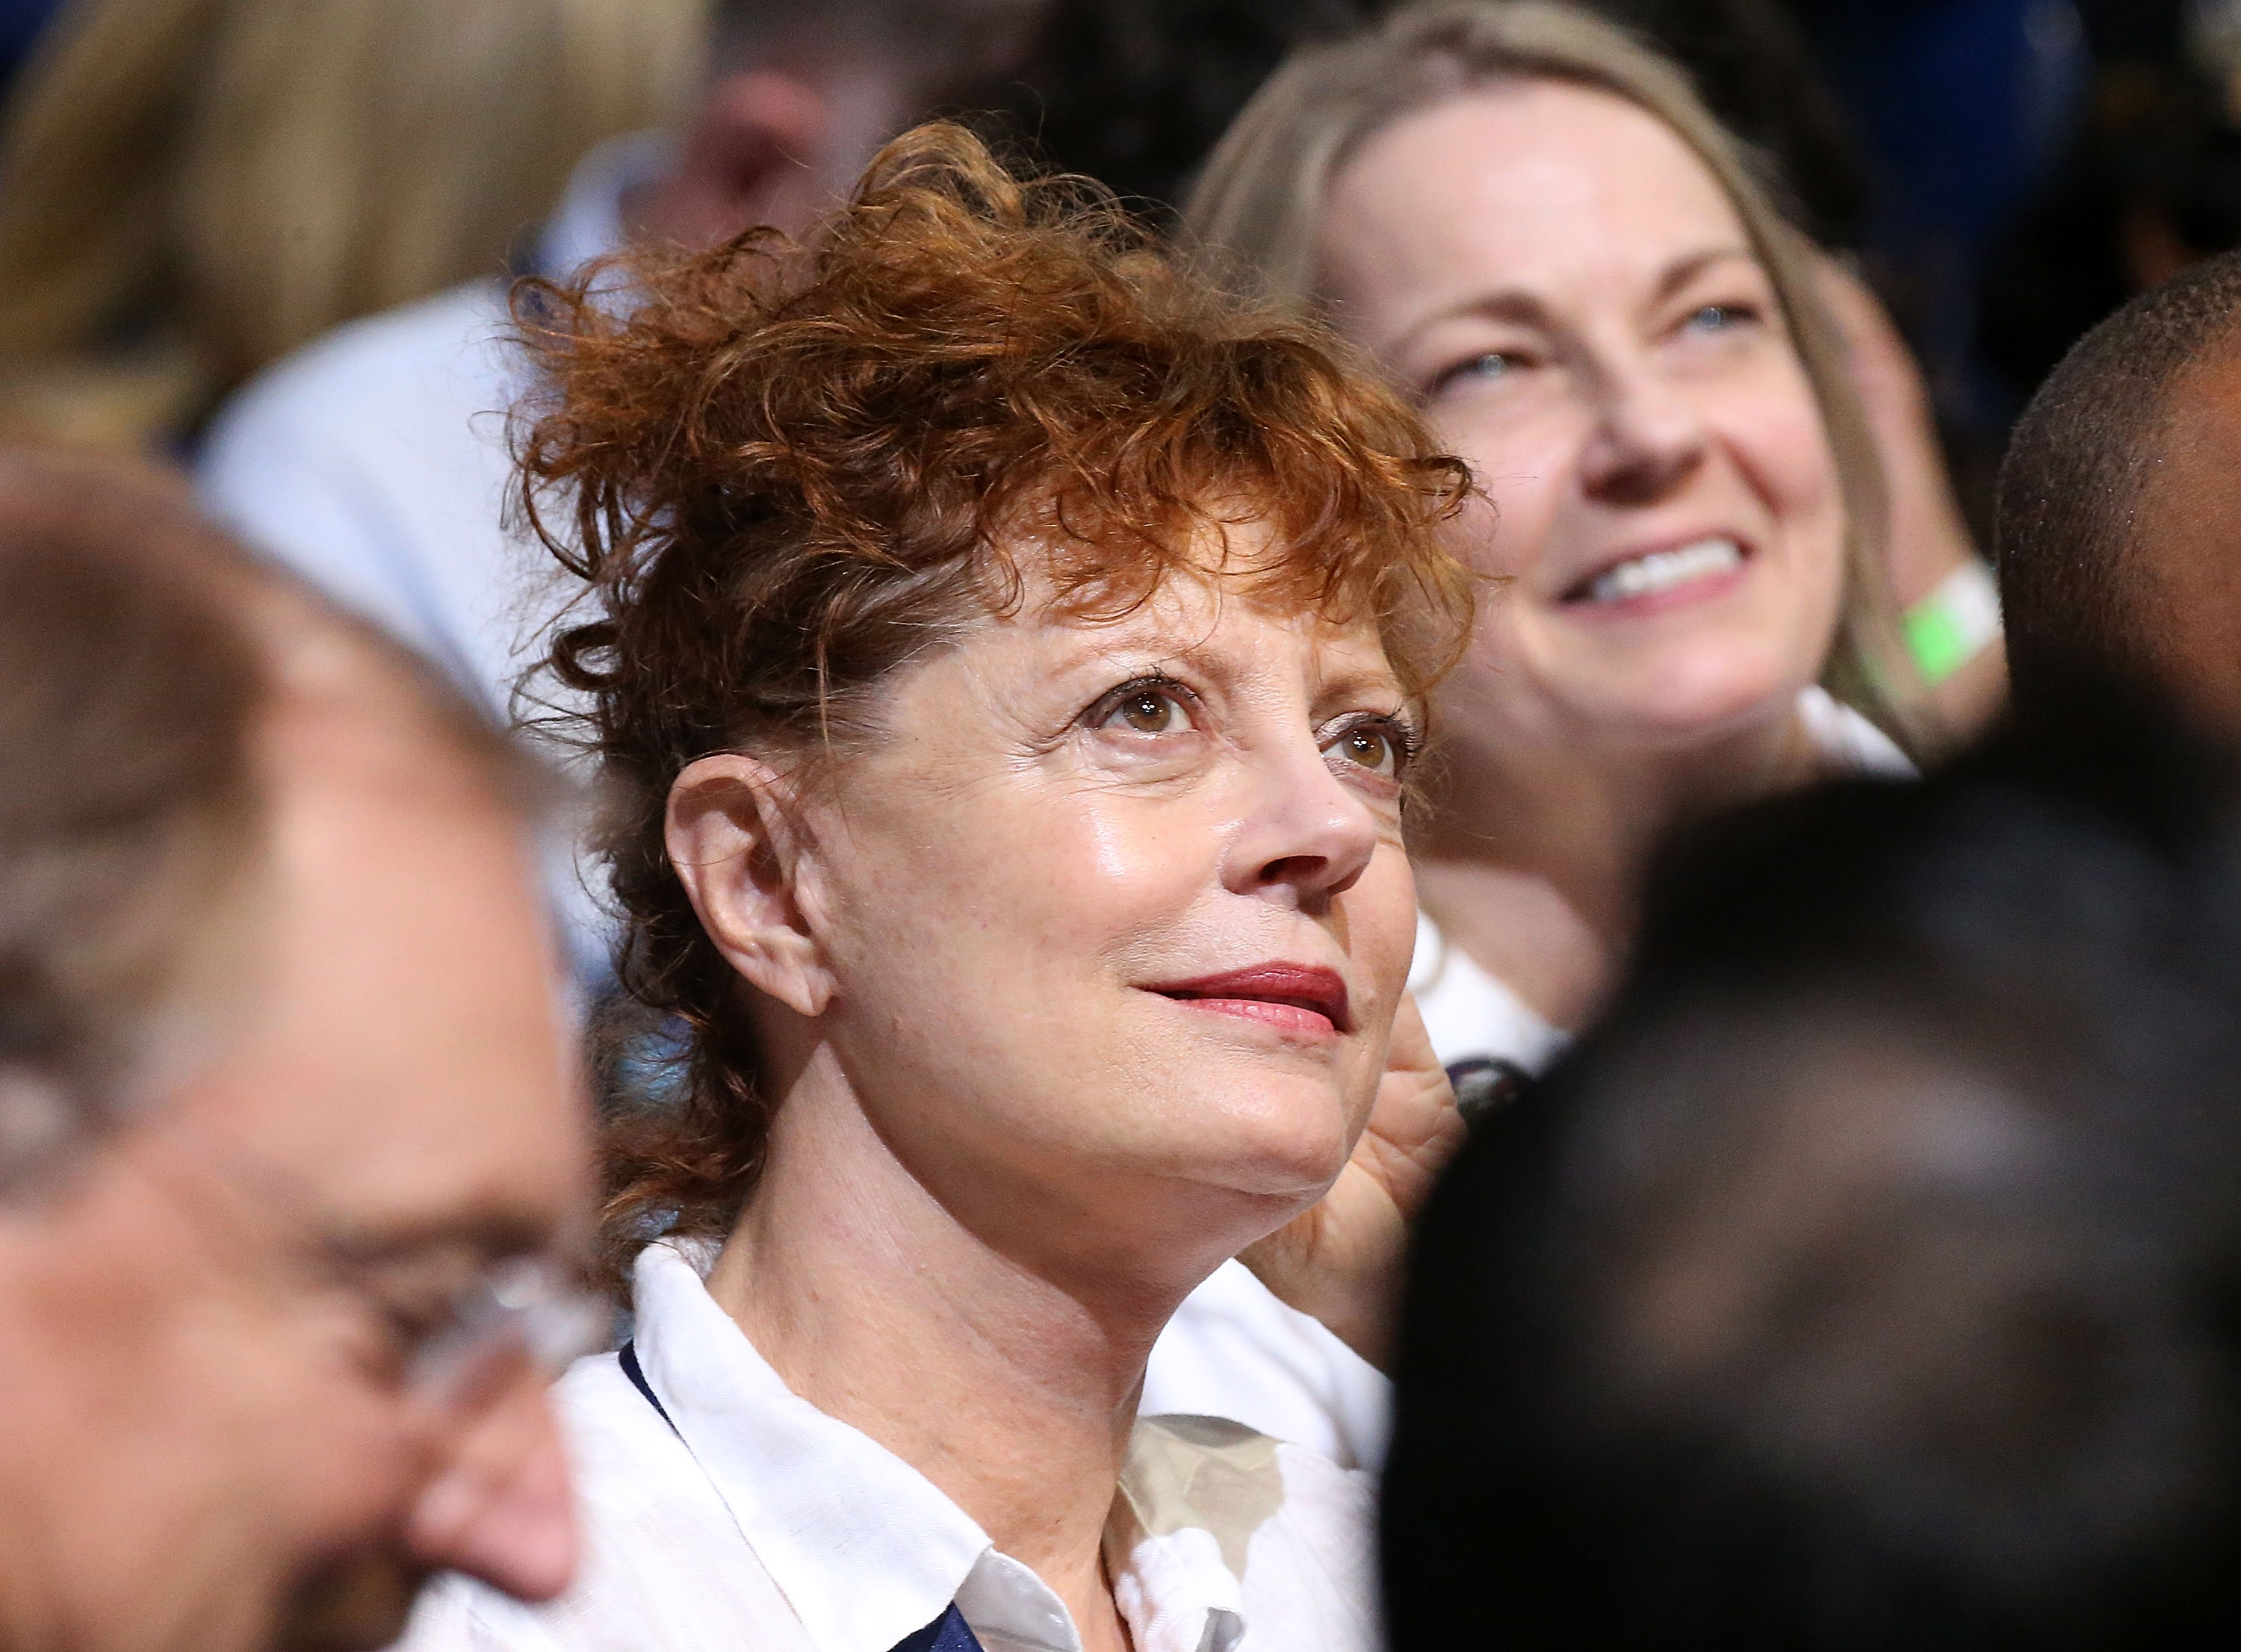 PHILADELPHIA, PA - JULY 25:  Actress Susan Sarandon sits in the crowd on the first day of the Democratic National Convention at the Wells Fargo Center, July 25, 2016 in Philadelphia, Pennsylvania.  An estimated 50,000 people are expected in Philadelphia, including hundreds of protesters and members of the media. The four-day Democratic National Convention kicked off July 25.  (Photo by Paul Morigi/WireImage)